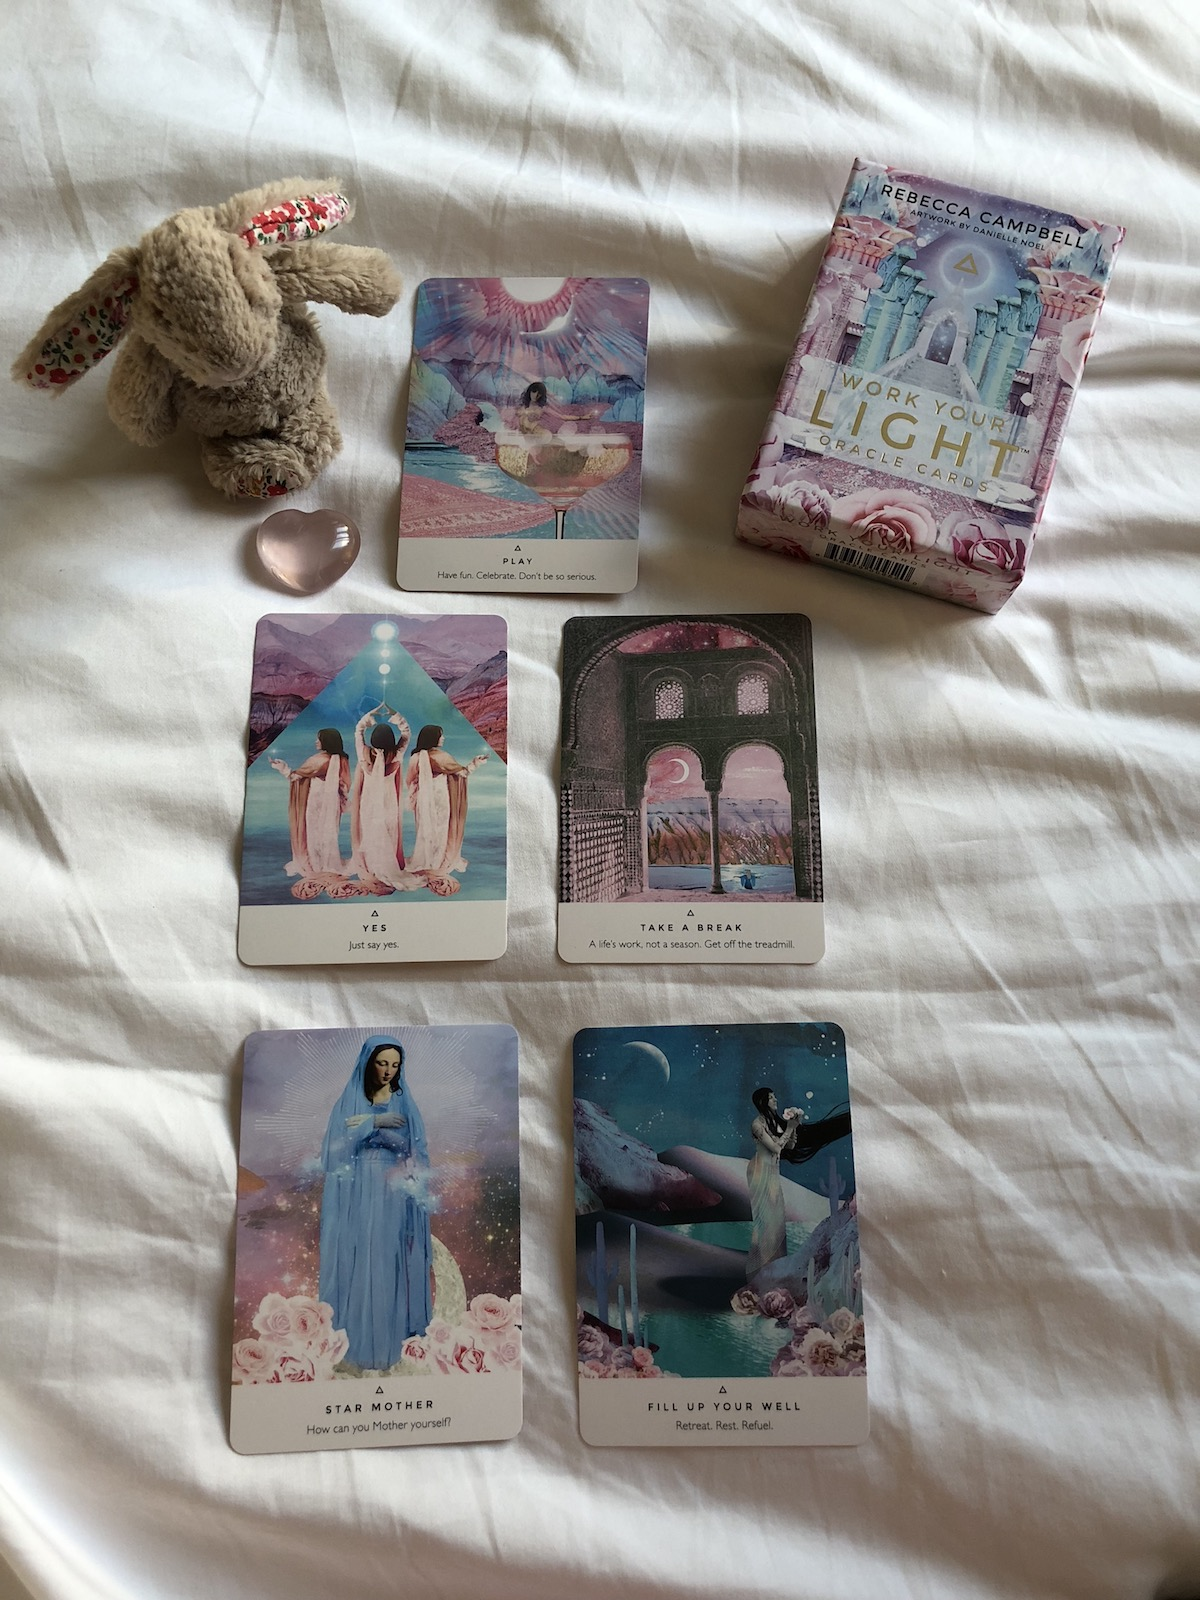 - These magical activating oracle cards by the Hay House author Rebecca Campbell. Not only are they beautiful they help awaken your intuition and connect with yourself. Really wonderful cards to work with.